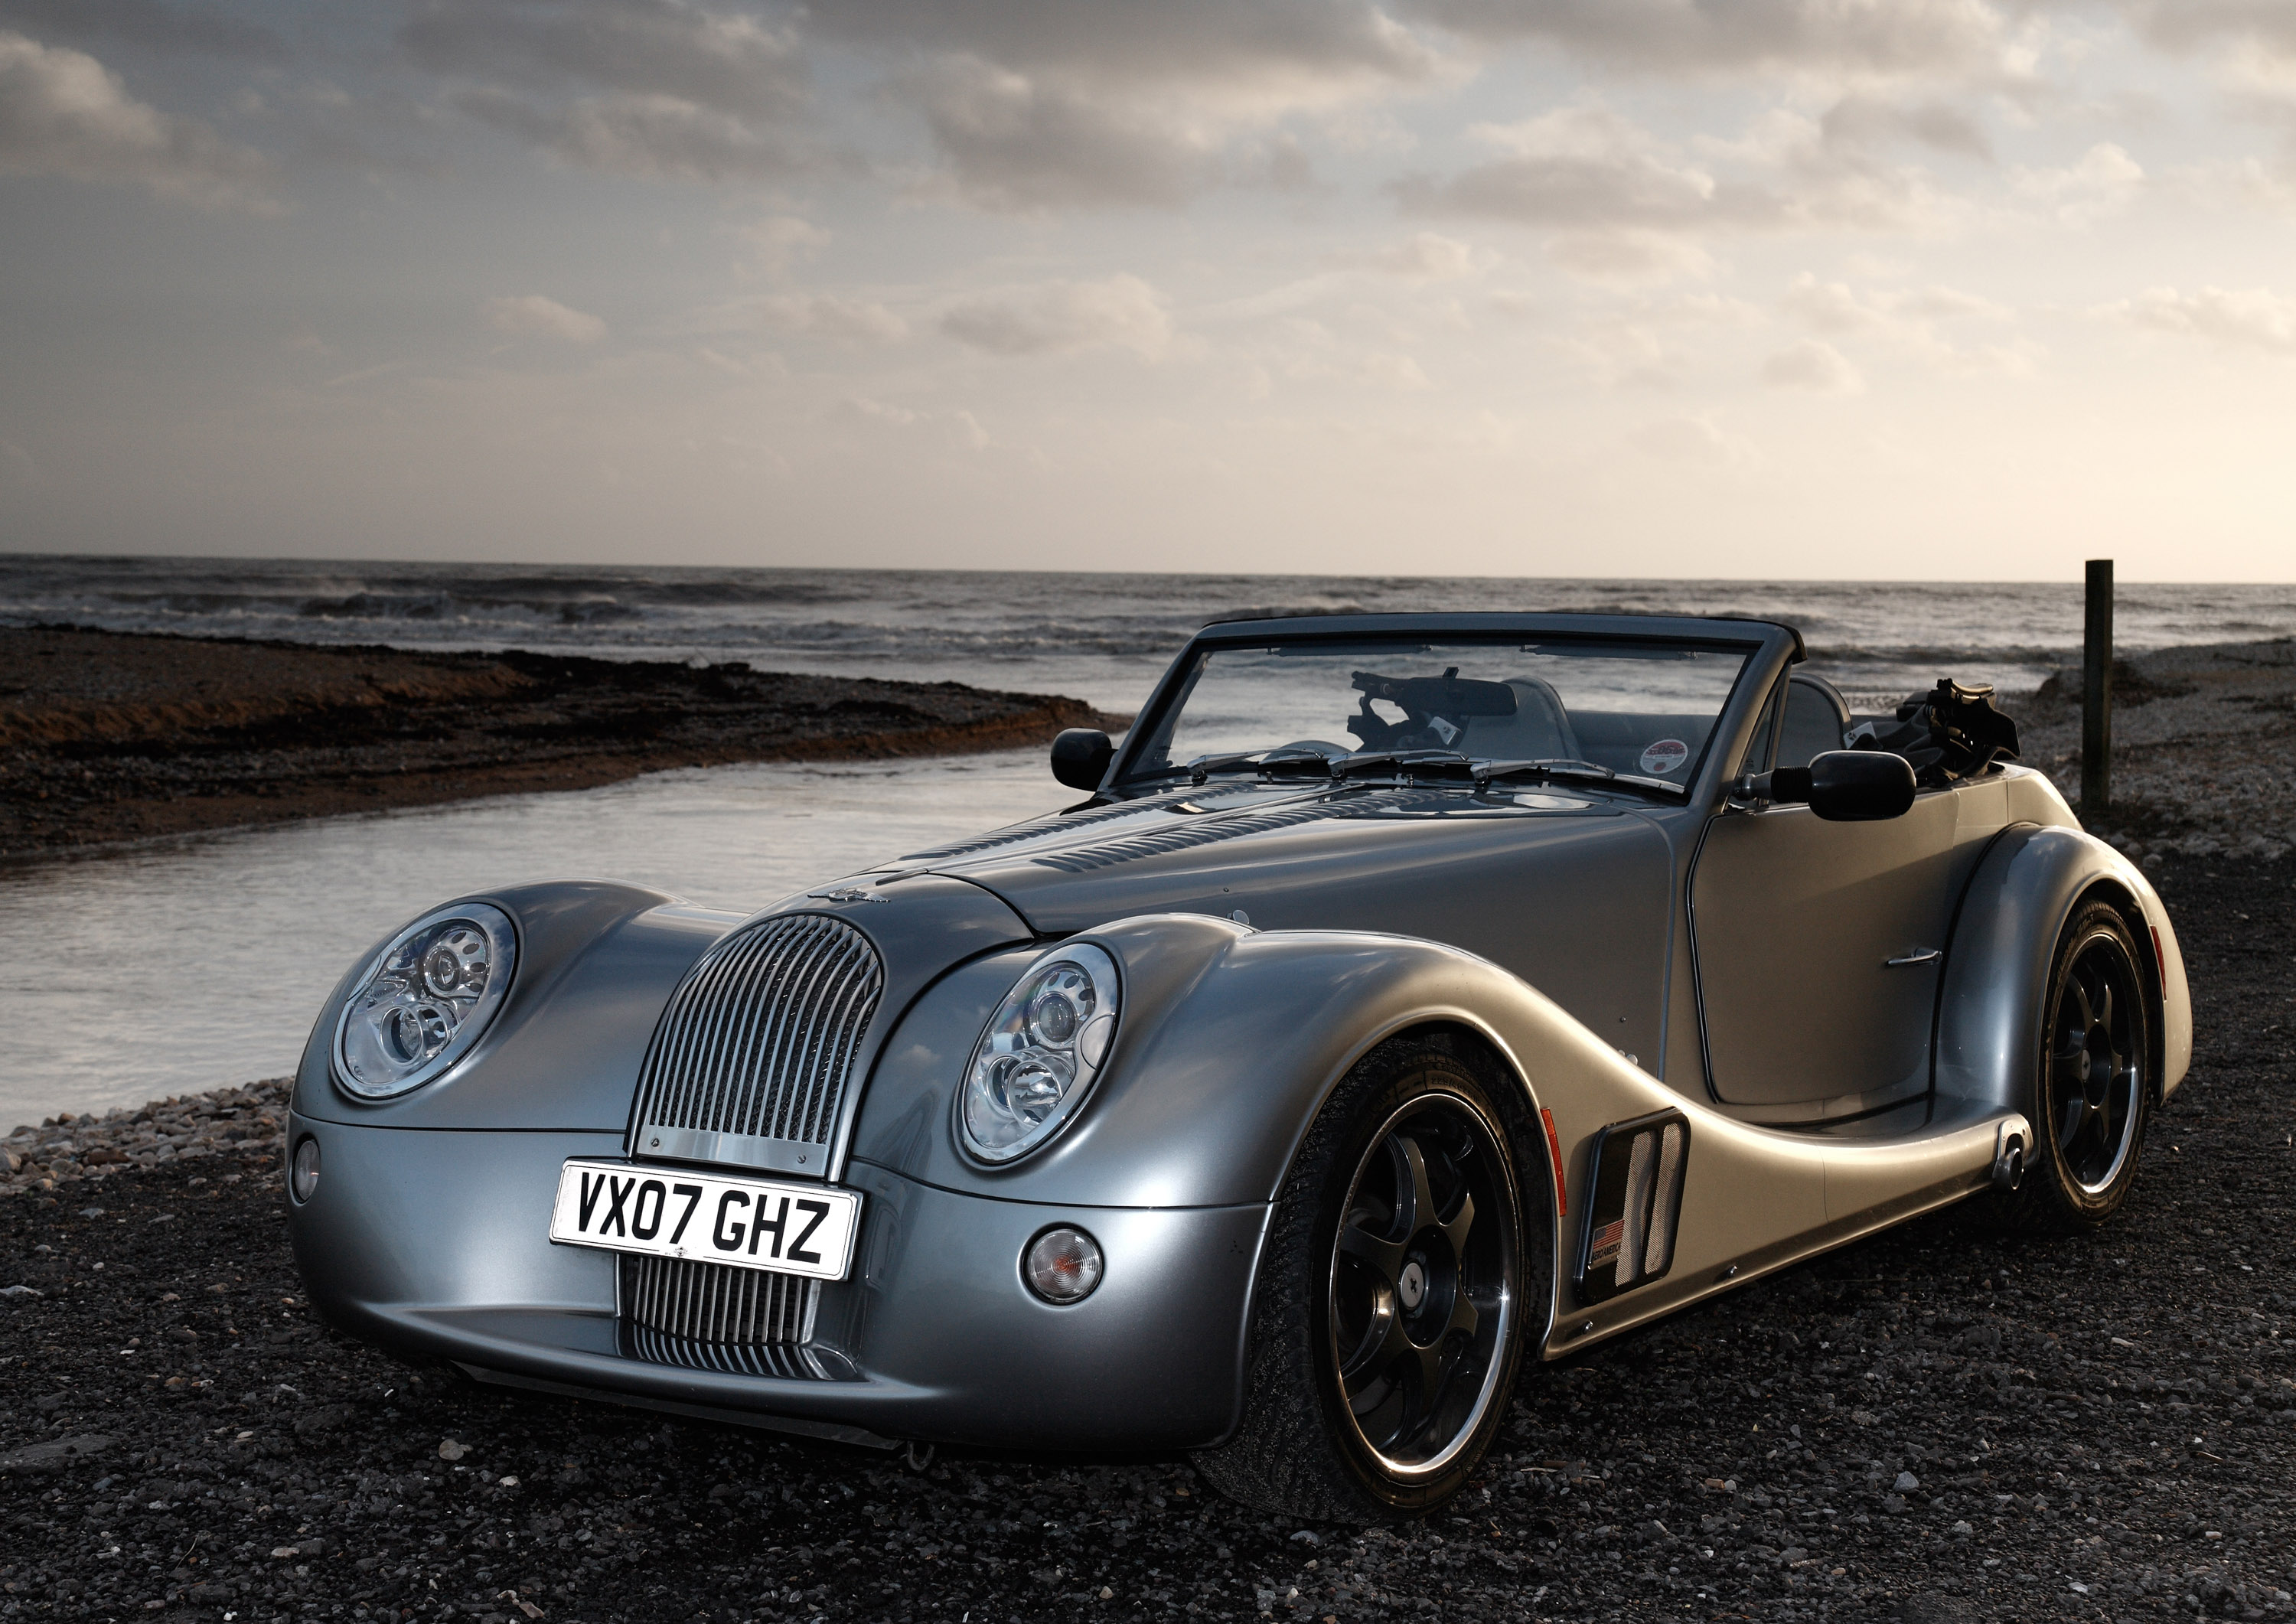 Morgan aero 8 48 litre morgan aero 8 vanachro Images